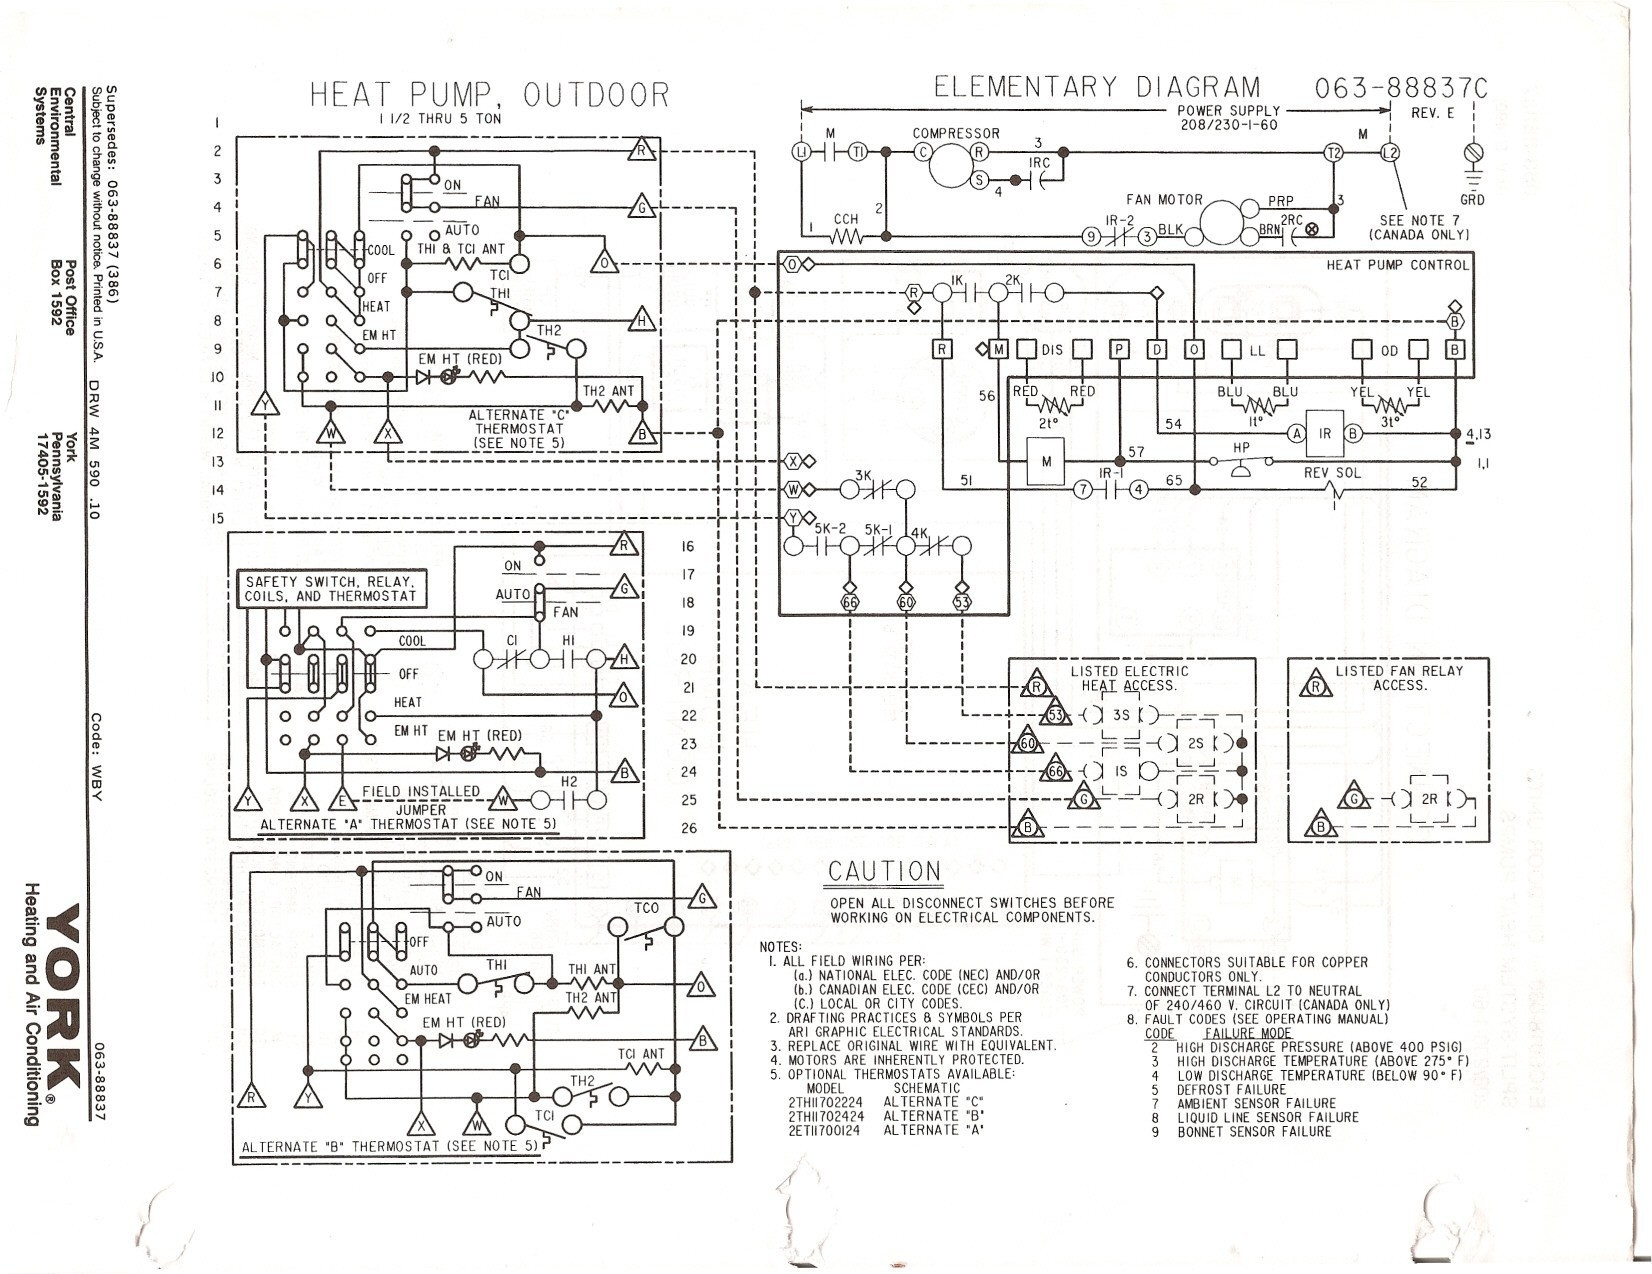 goodman ac unit wiring diagram free wiring diagram Goodman AC Electrical Diagram goodman ac unit wiring diagram wiring diagram for goodman ac unit save ac package unit